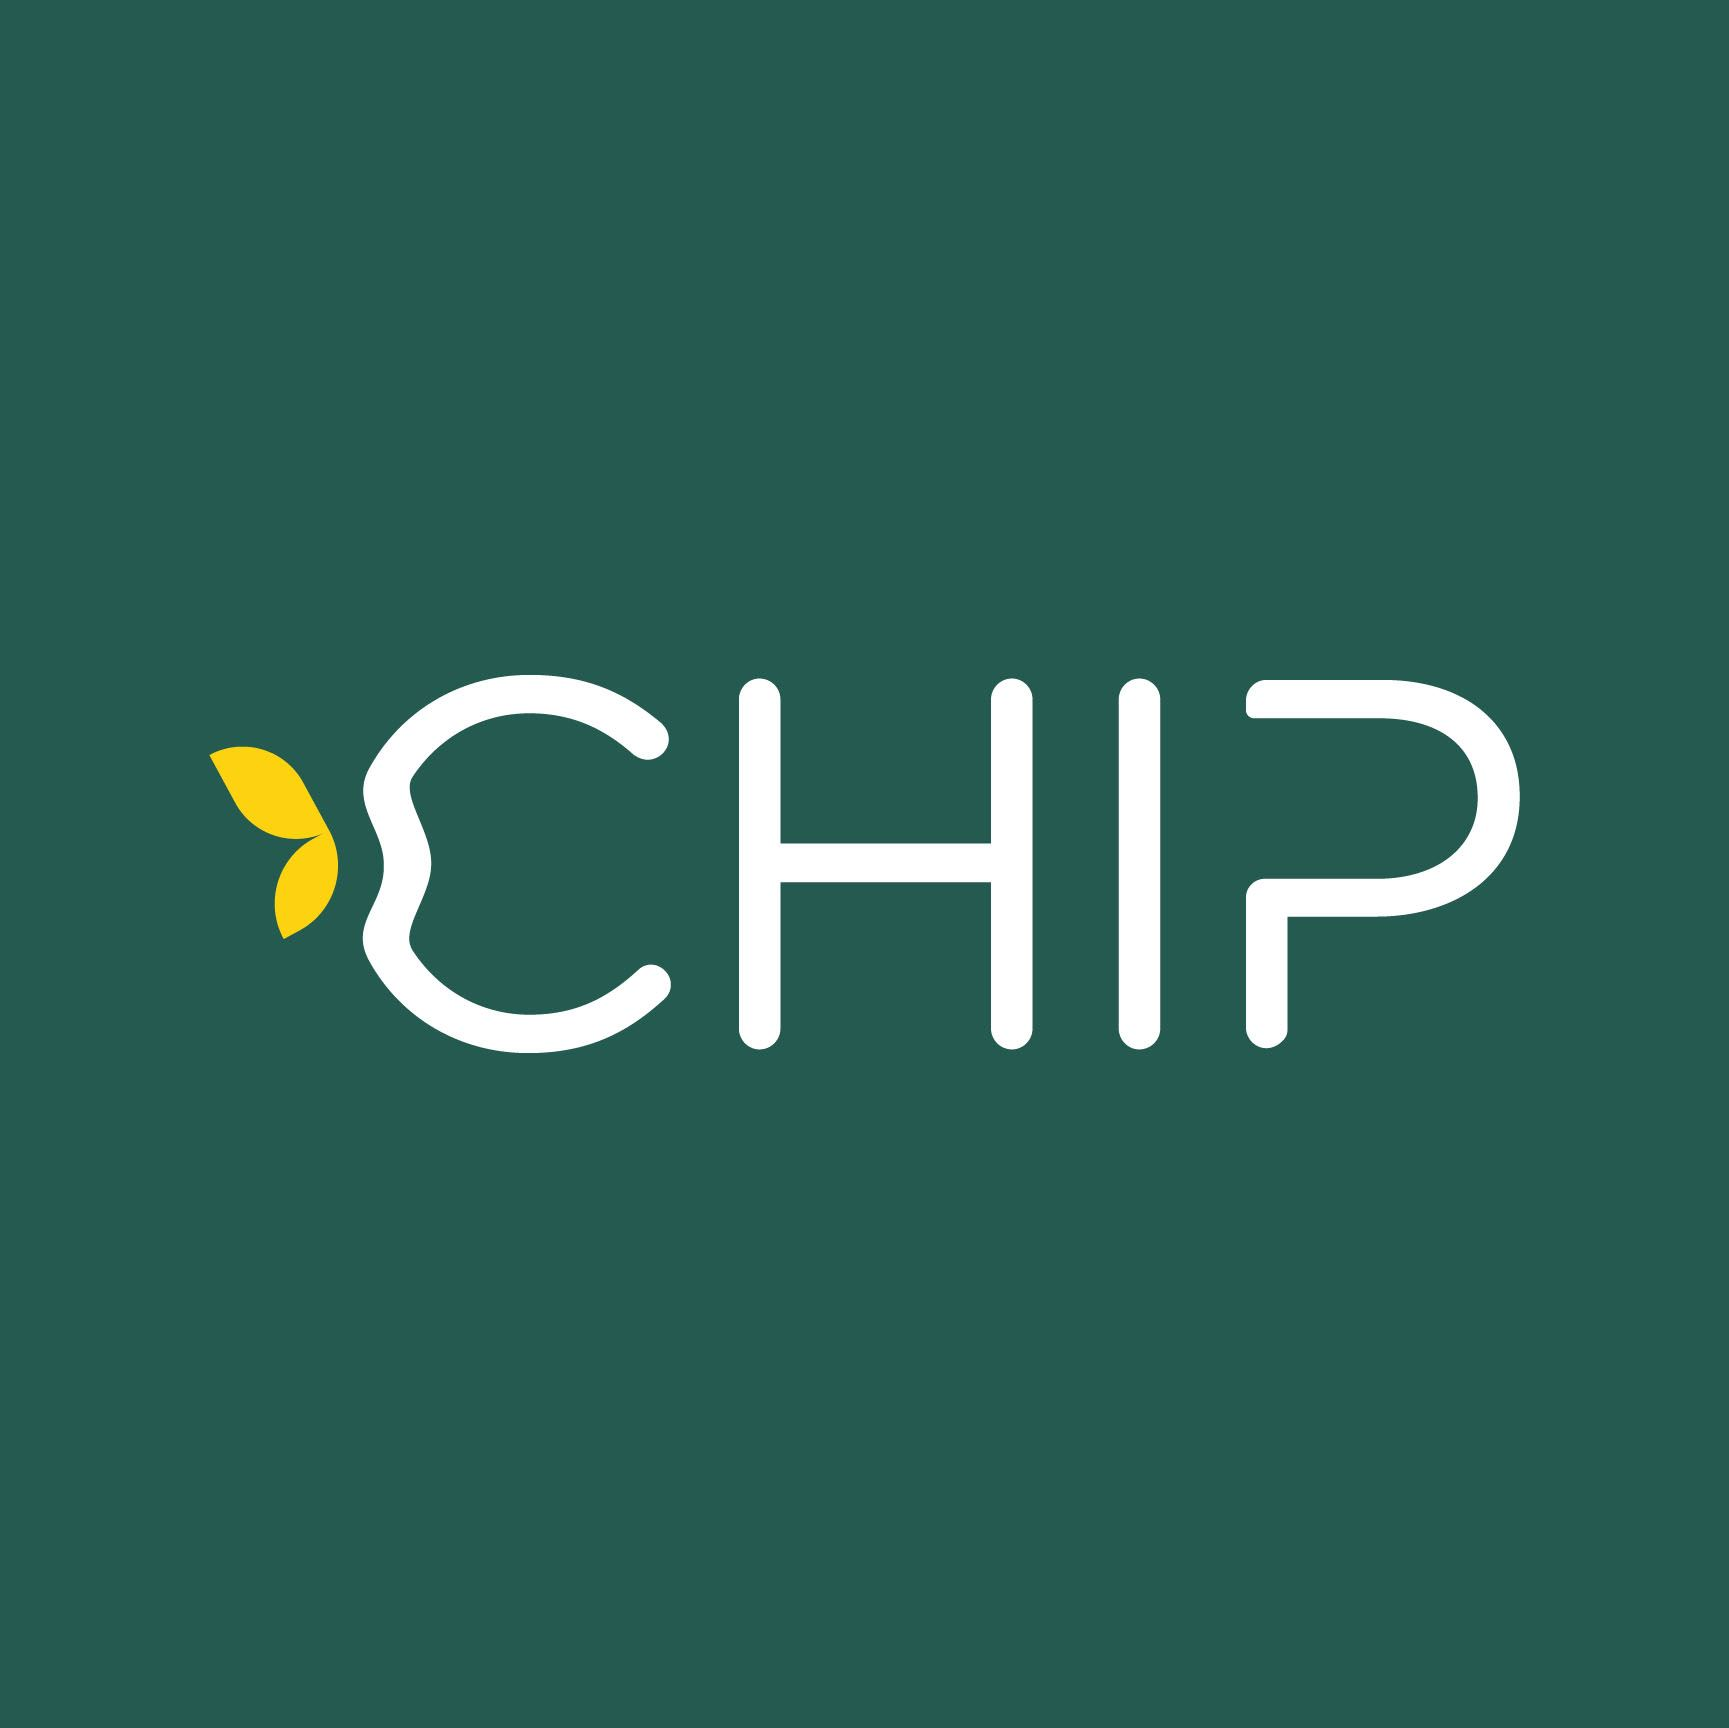 CHIP_LOGO_WHITE Sq on GrnBkgrnd